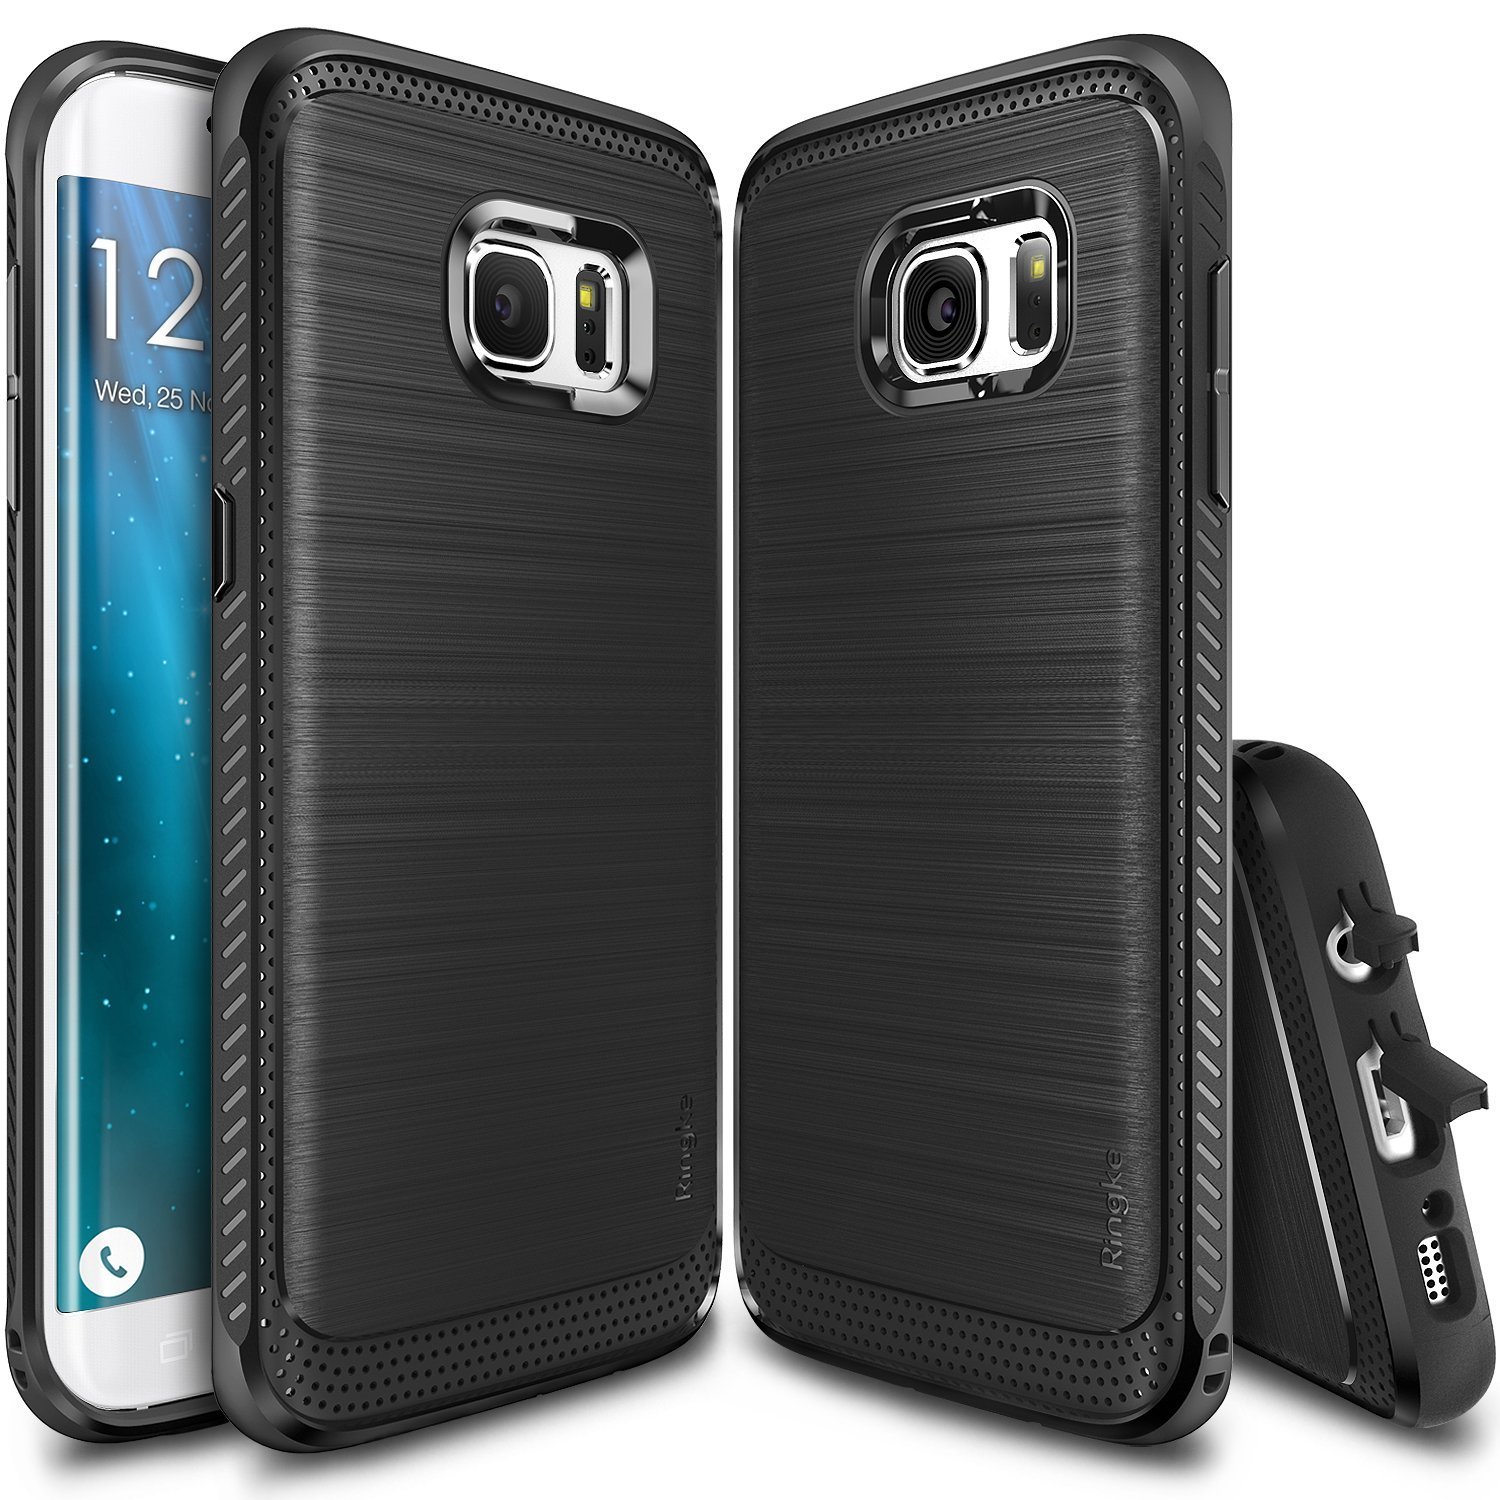 Samsung Galaxy S7 Edge Case, Ringke [Black] ONYX Series Improved Strength Flexible TPU Defensive Case